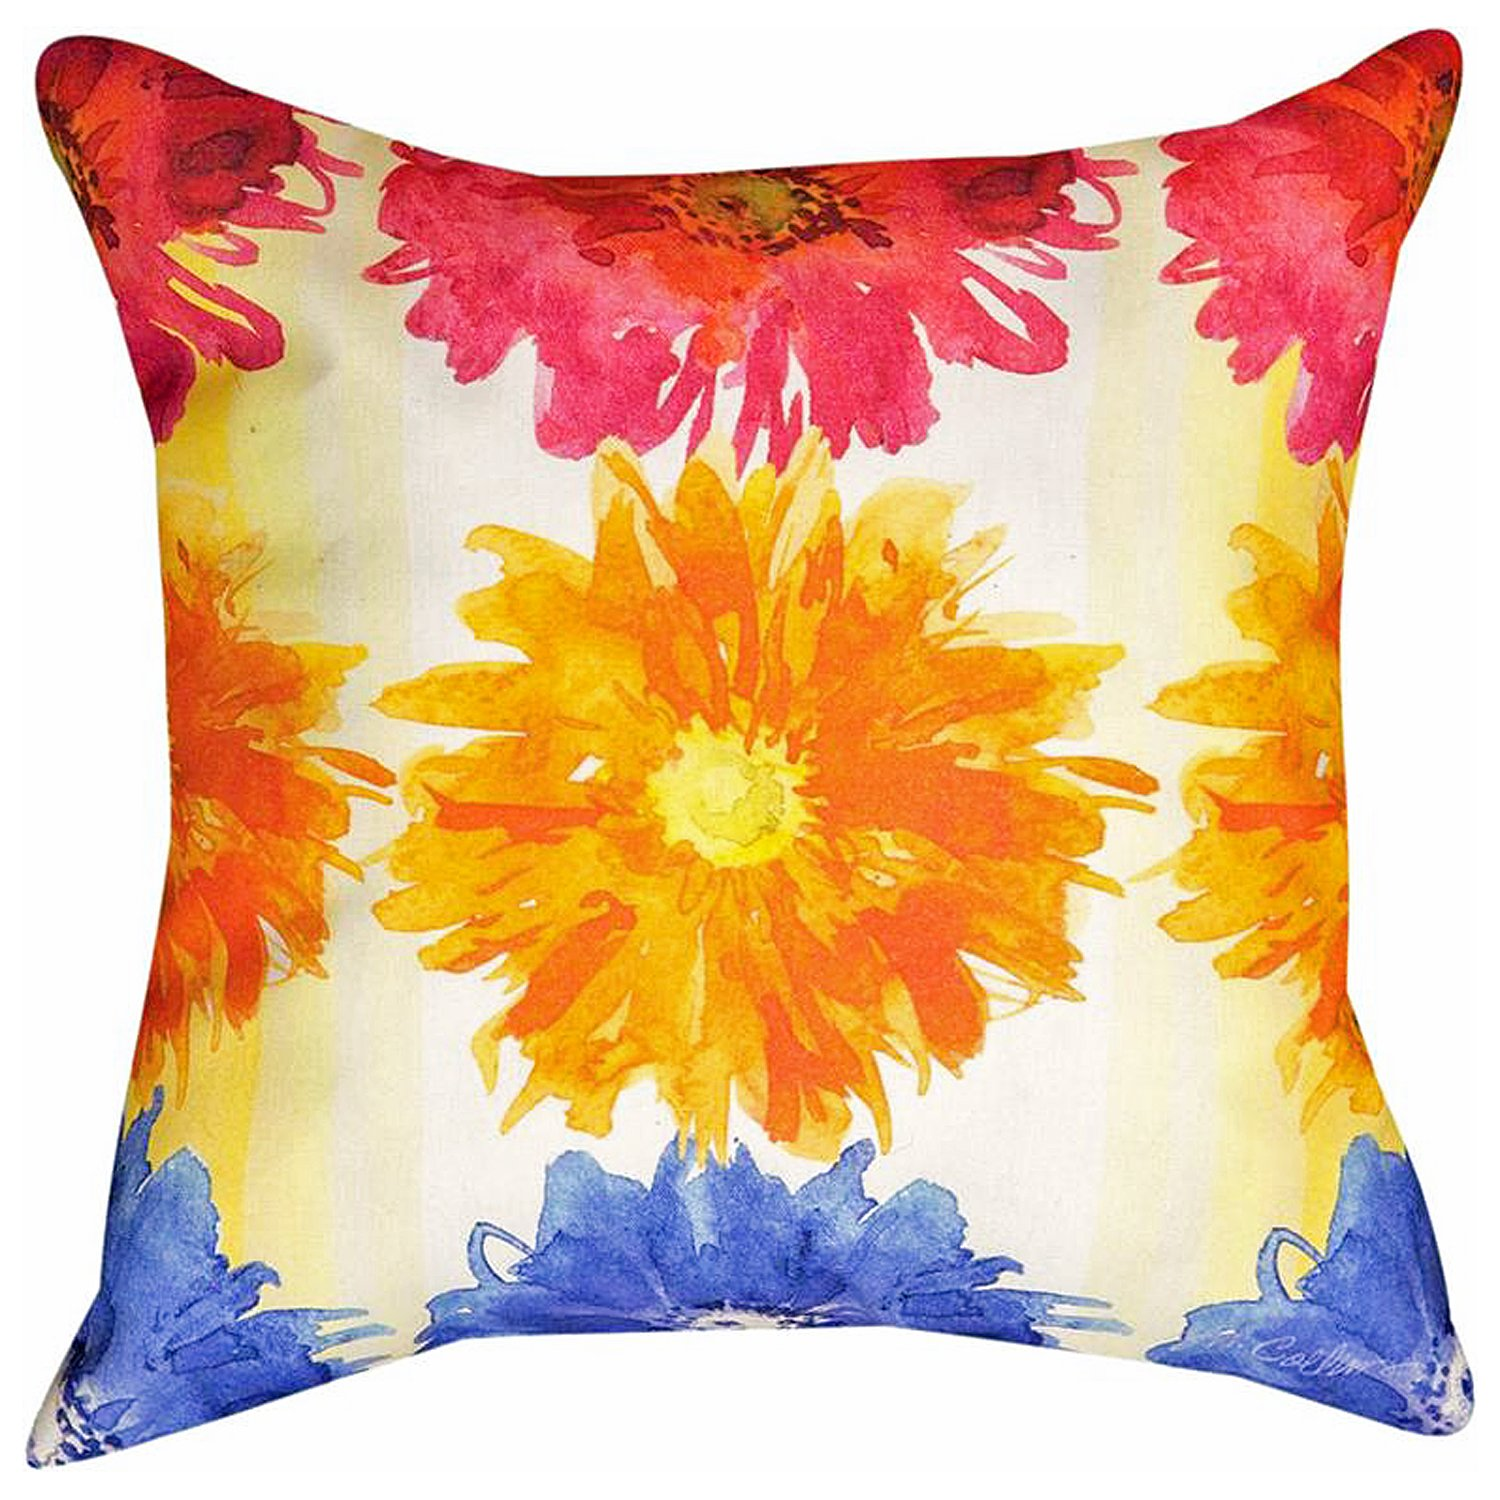 DECORATIVE PILLOWS - ''FLOWER POWER'' INDOOR OUTDOOR PILLOW - 18'' SQUARE